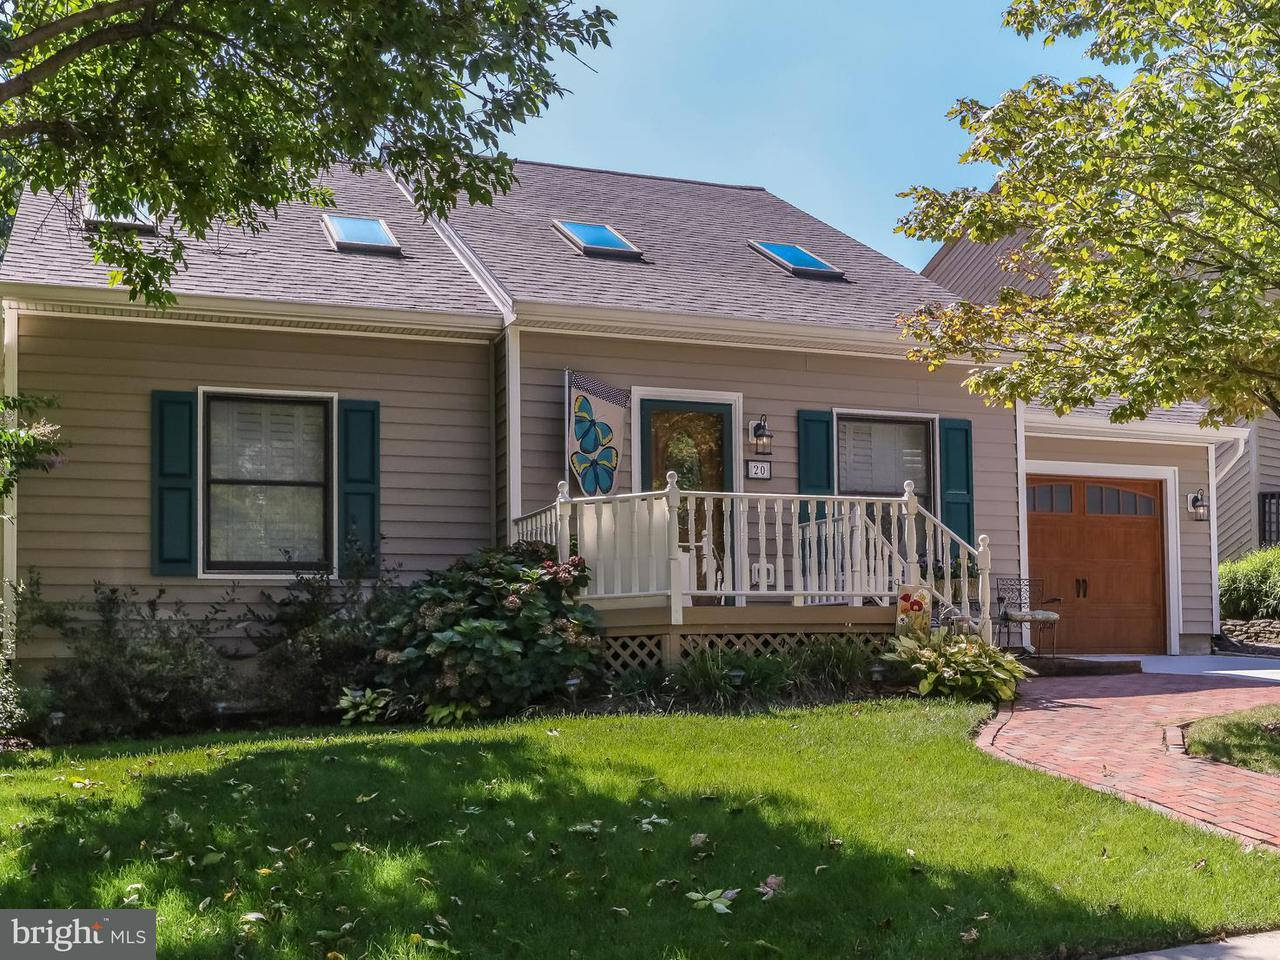 Single Family Home for Sale at 20 Windwhisper Lane 20 Windwhisper Lane Annapolis, Maryland 21403 United States